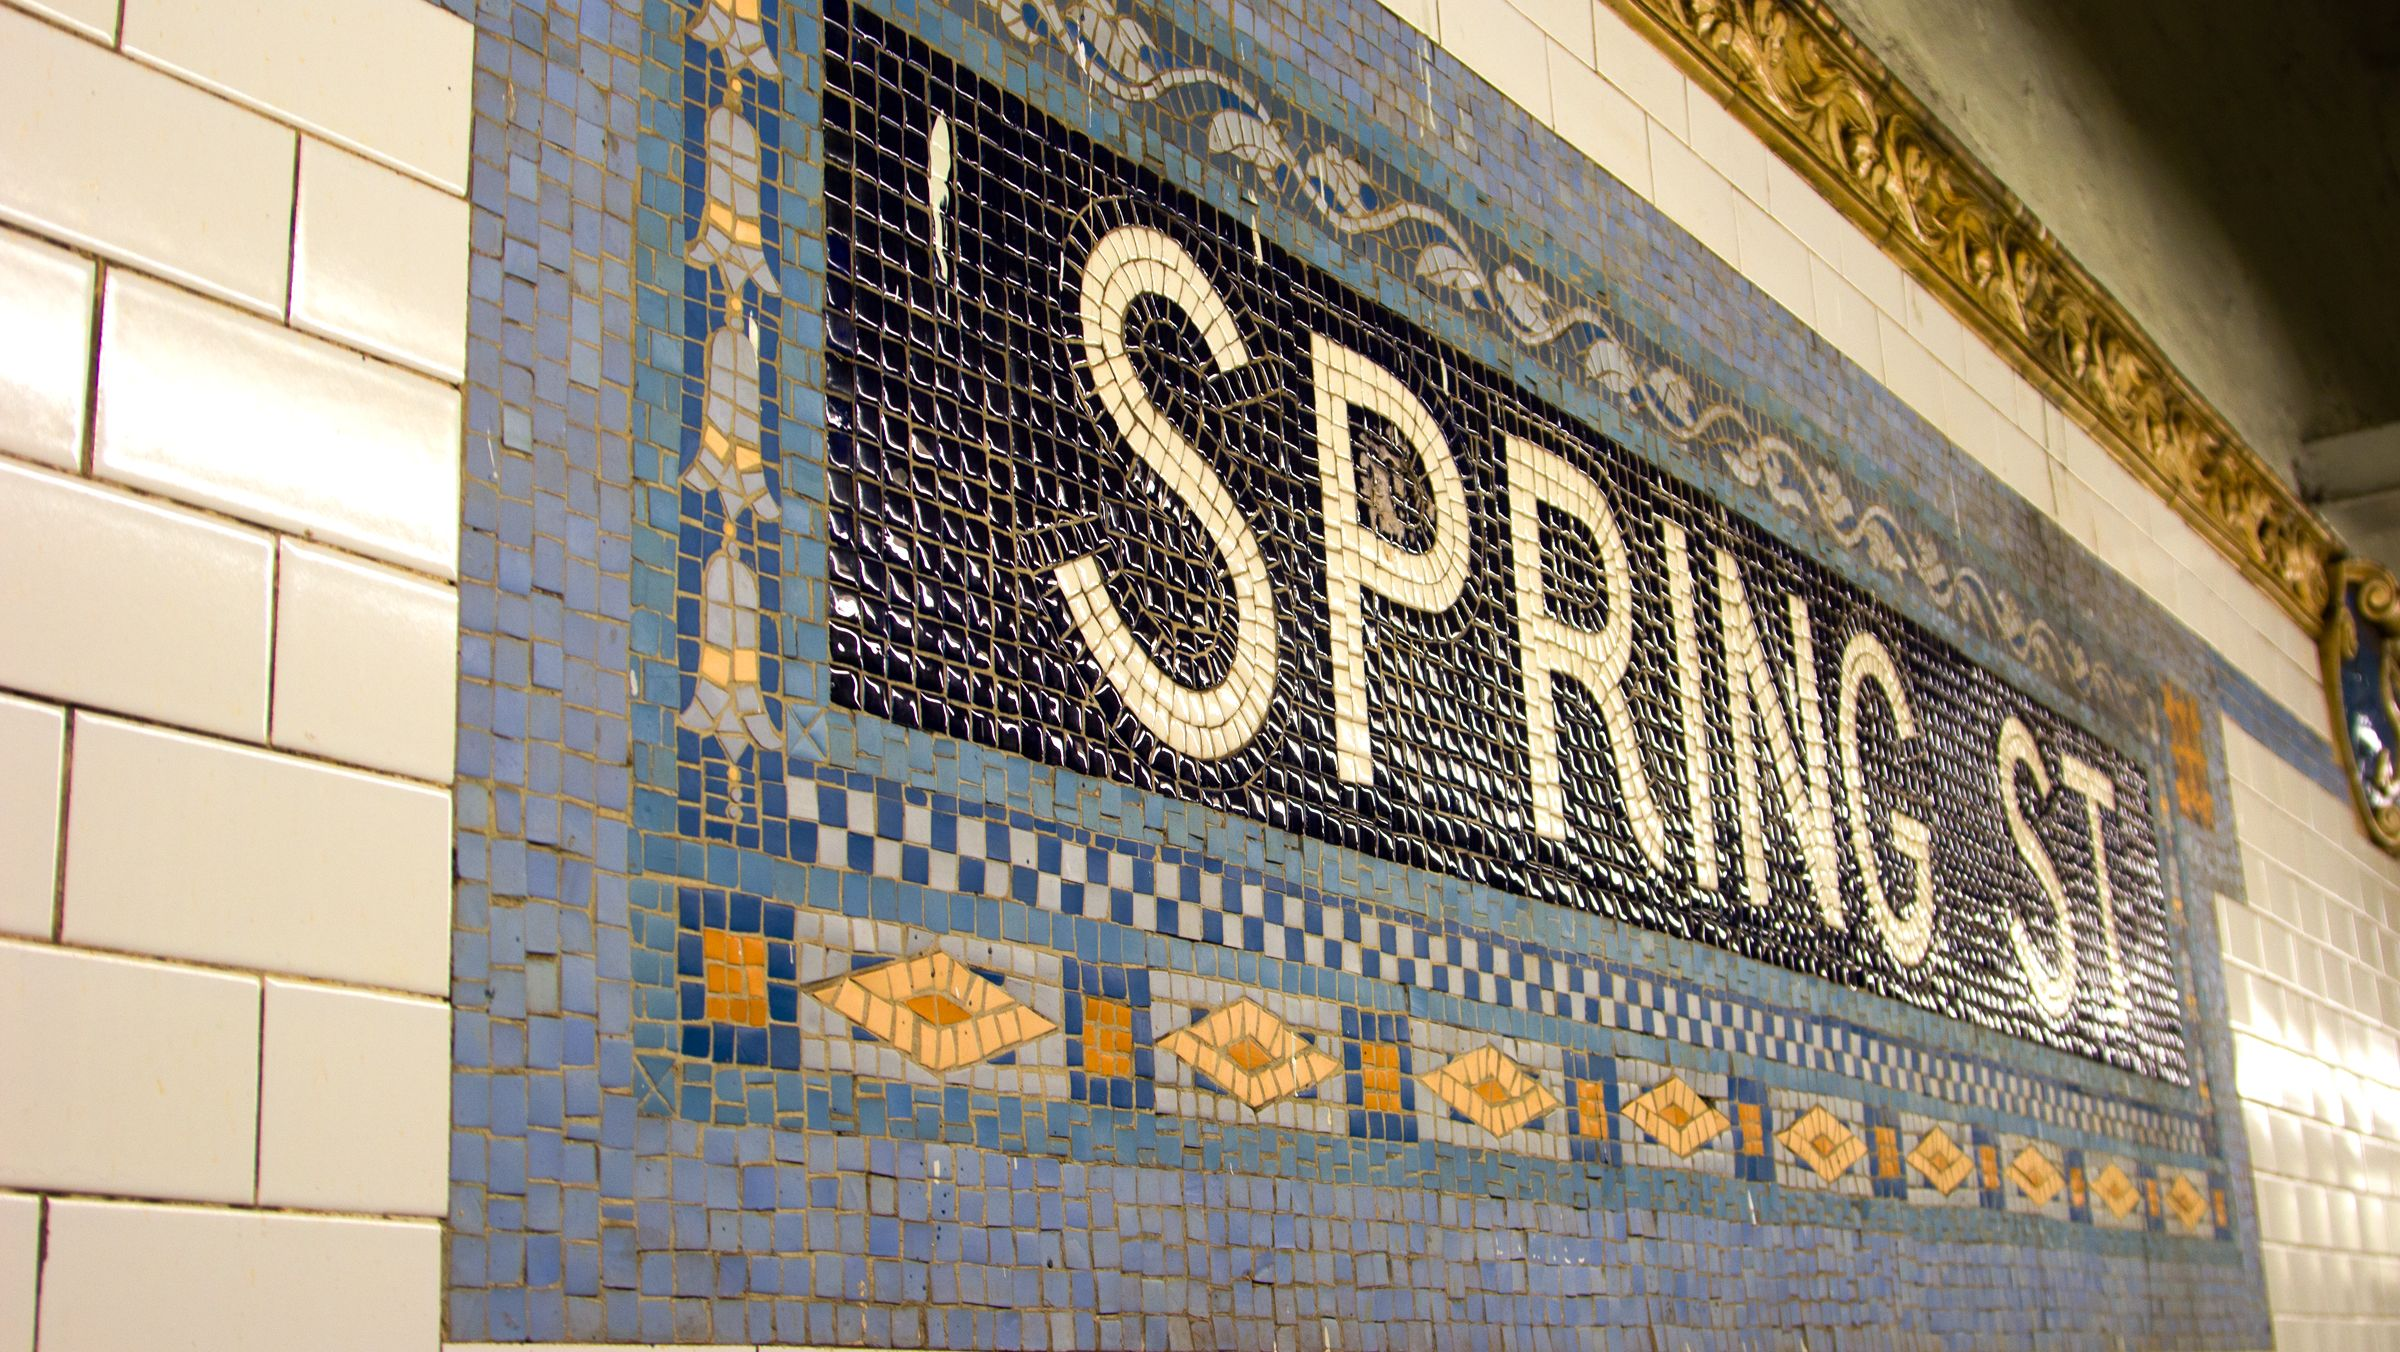 Meet the Artist Who Has Been Sketching New York City Subway Stations for 40 Years